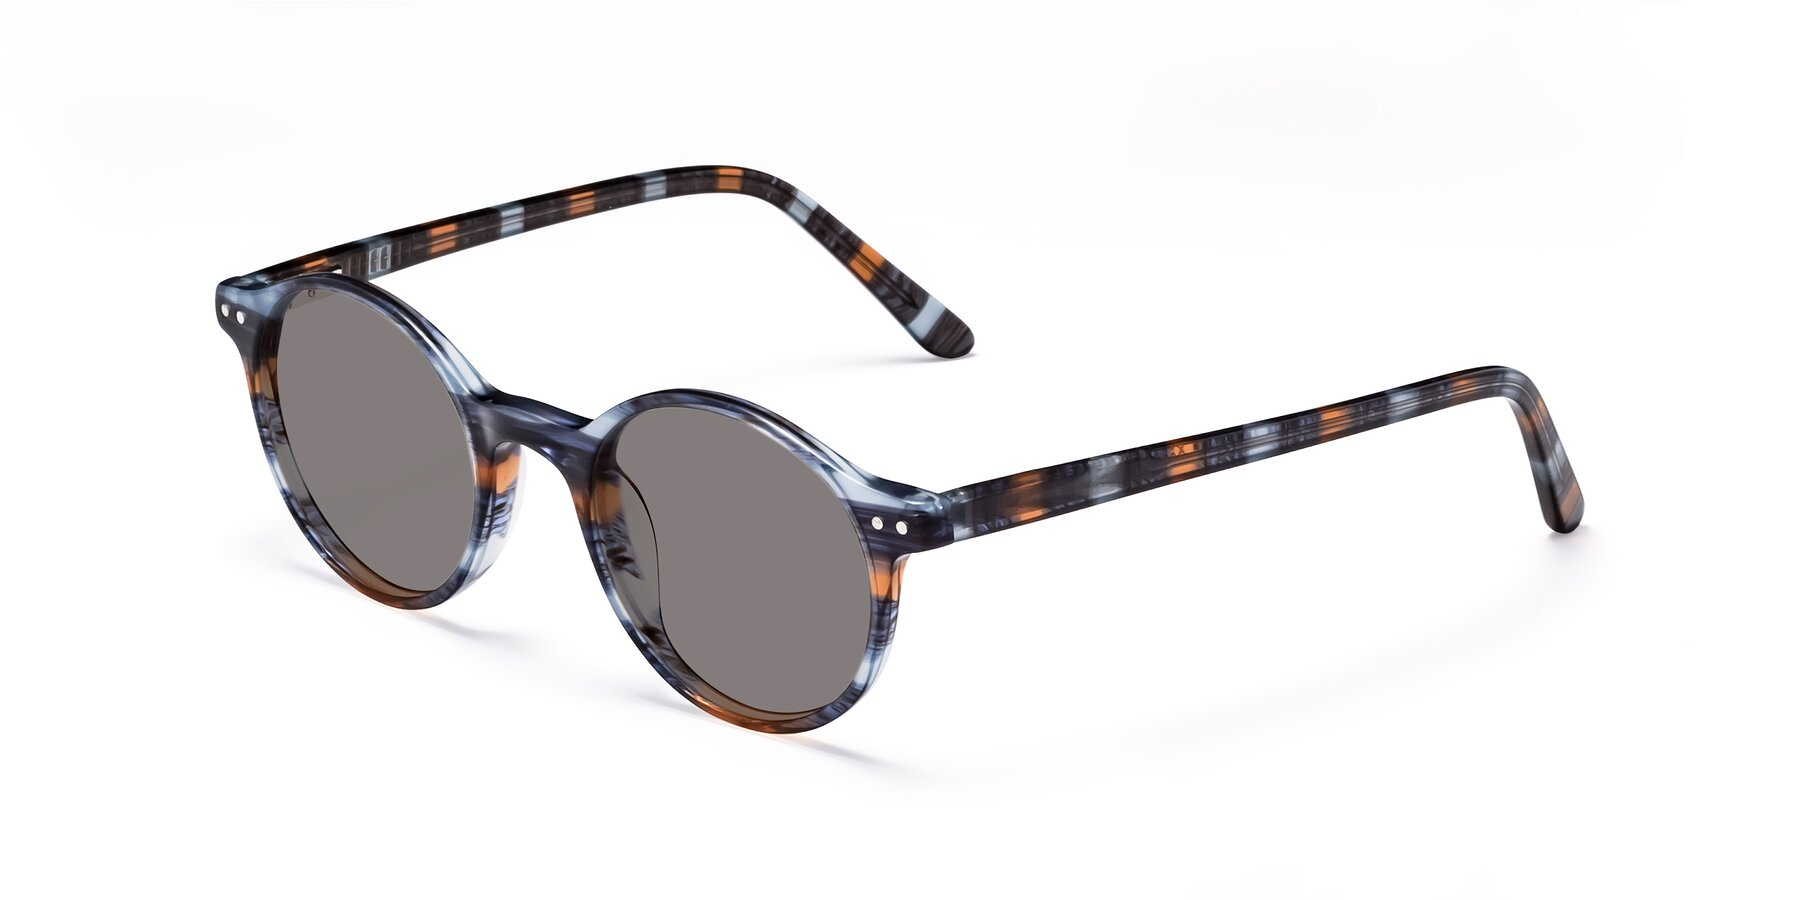 Angle of 17519 in Stripe Blue Brown with Medium Gray Tinted Lenses